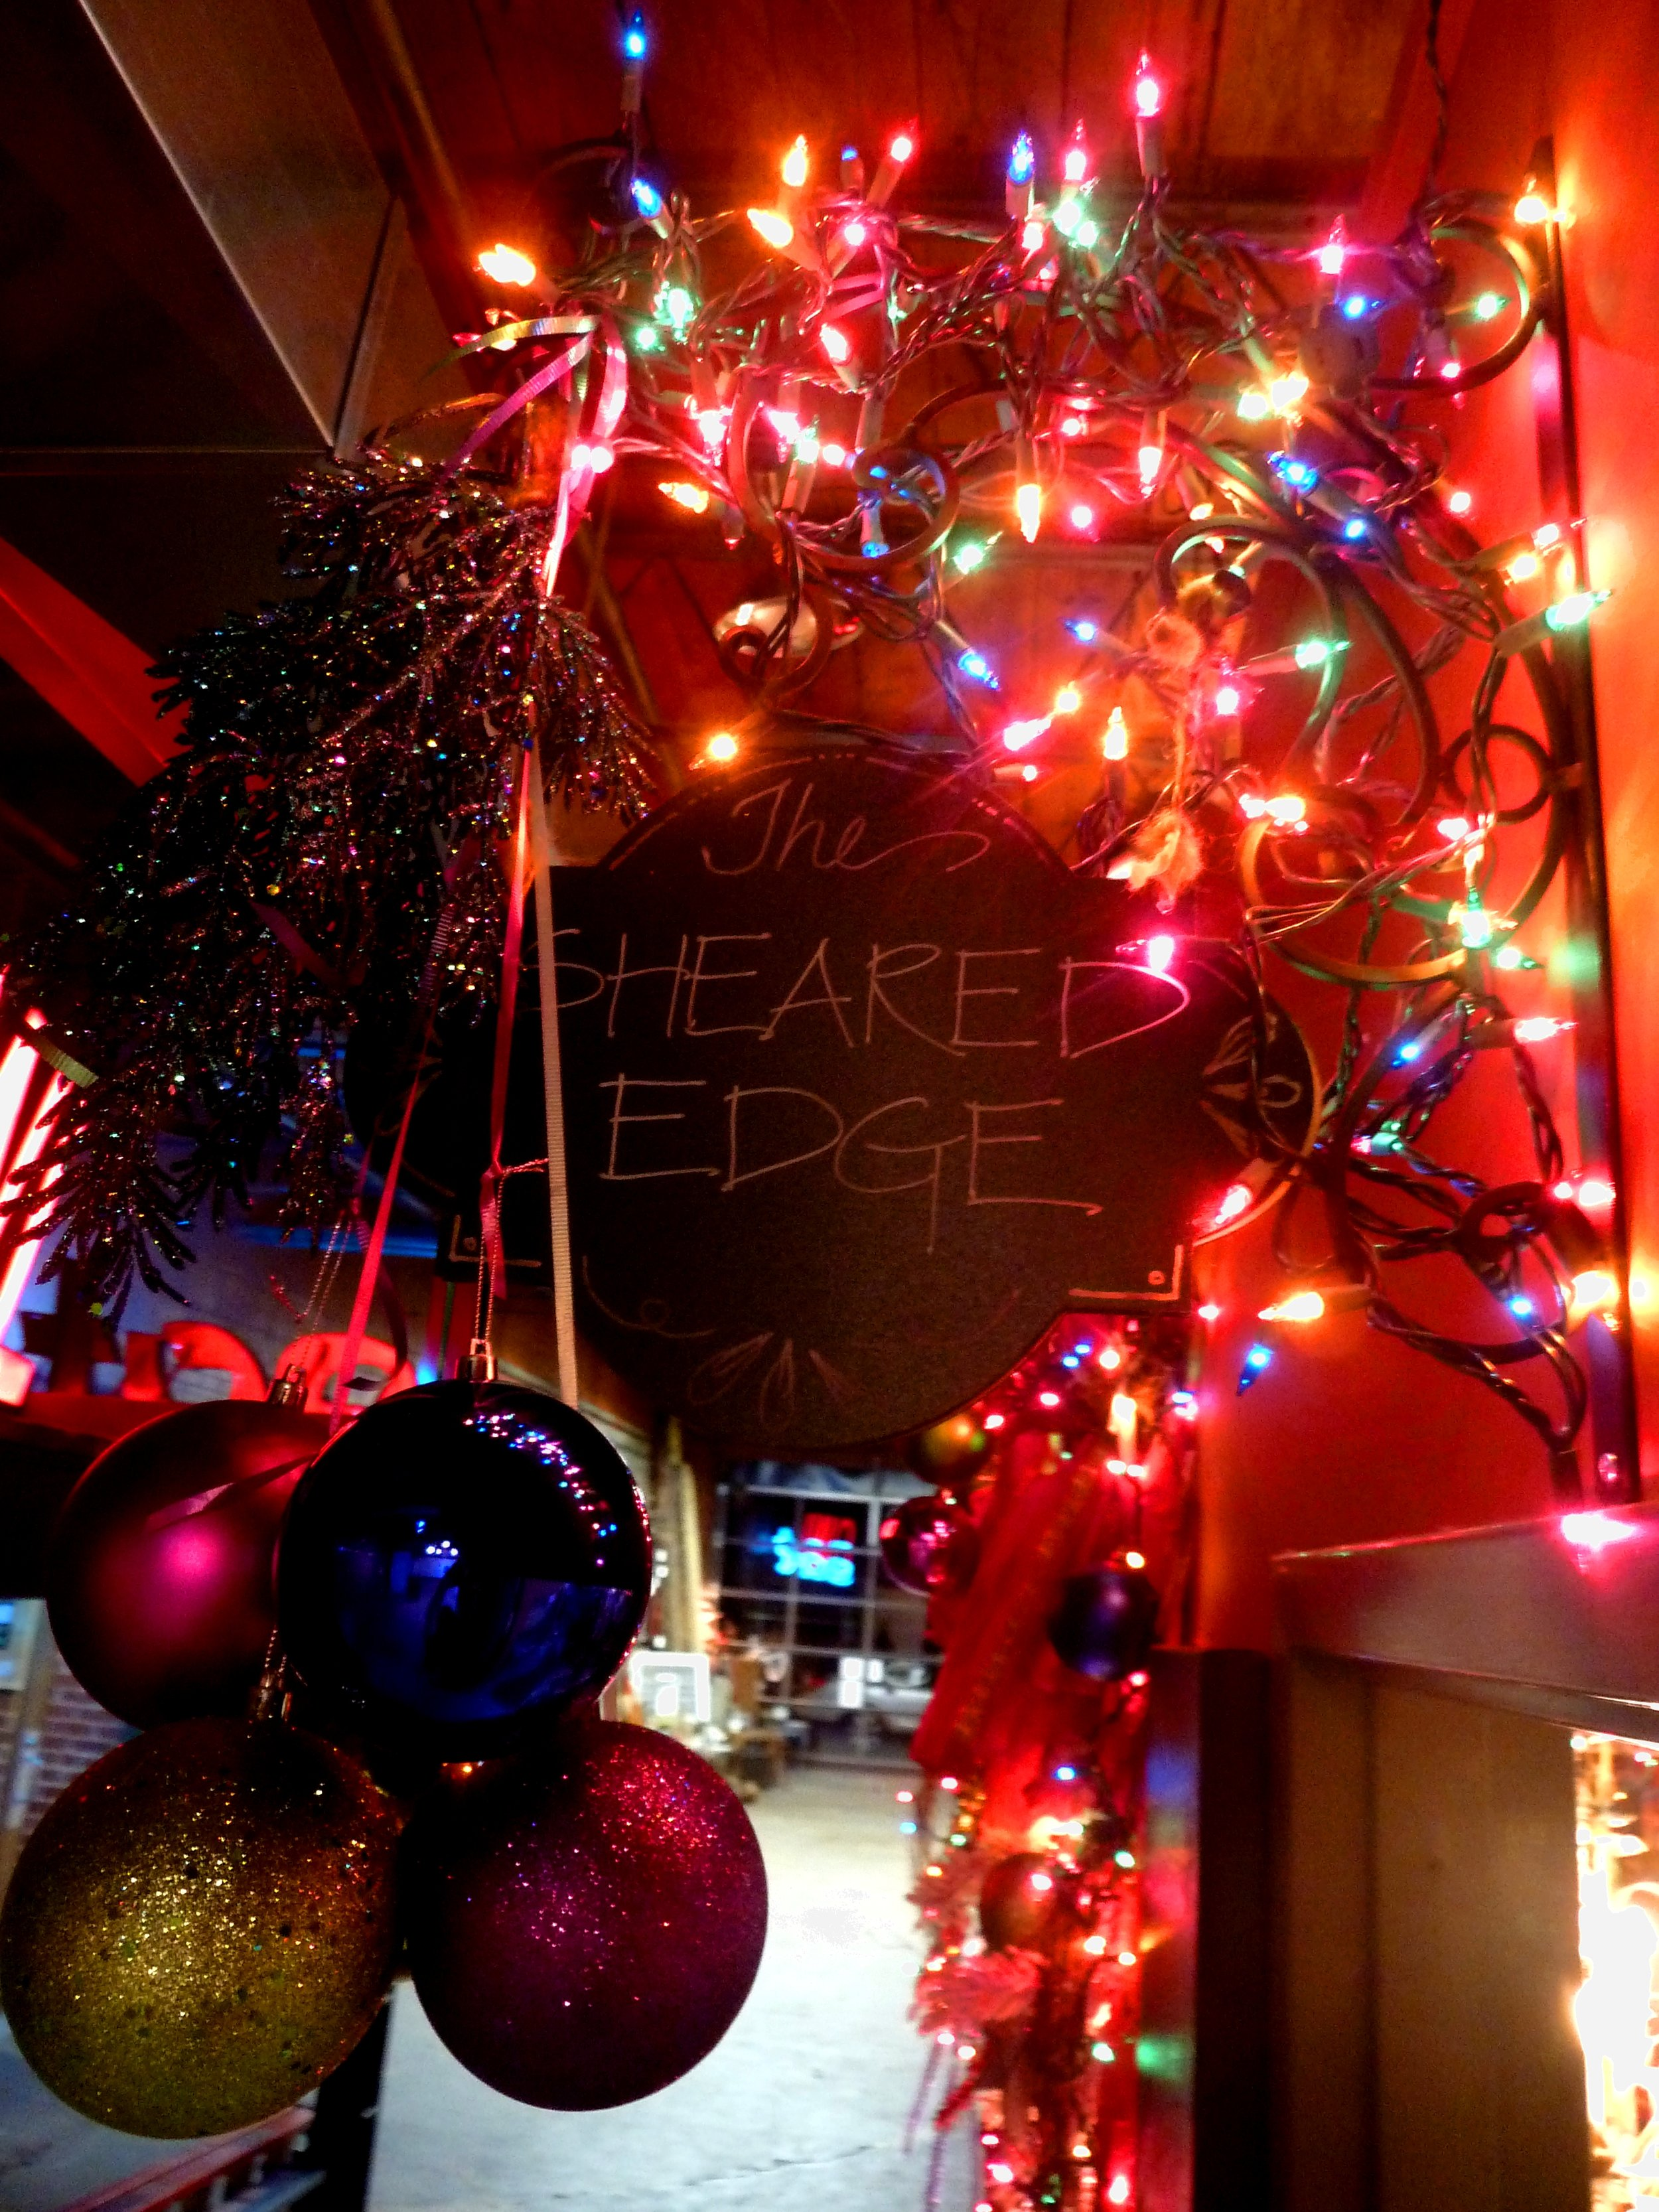 This festive sign at The Studios on Sheridan will direct your path to The Sheared Edge!